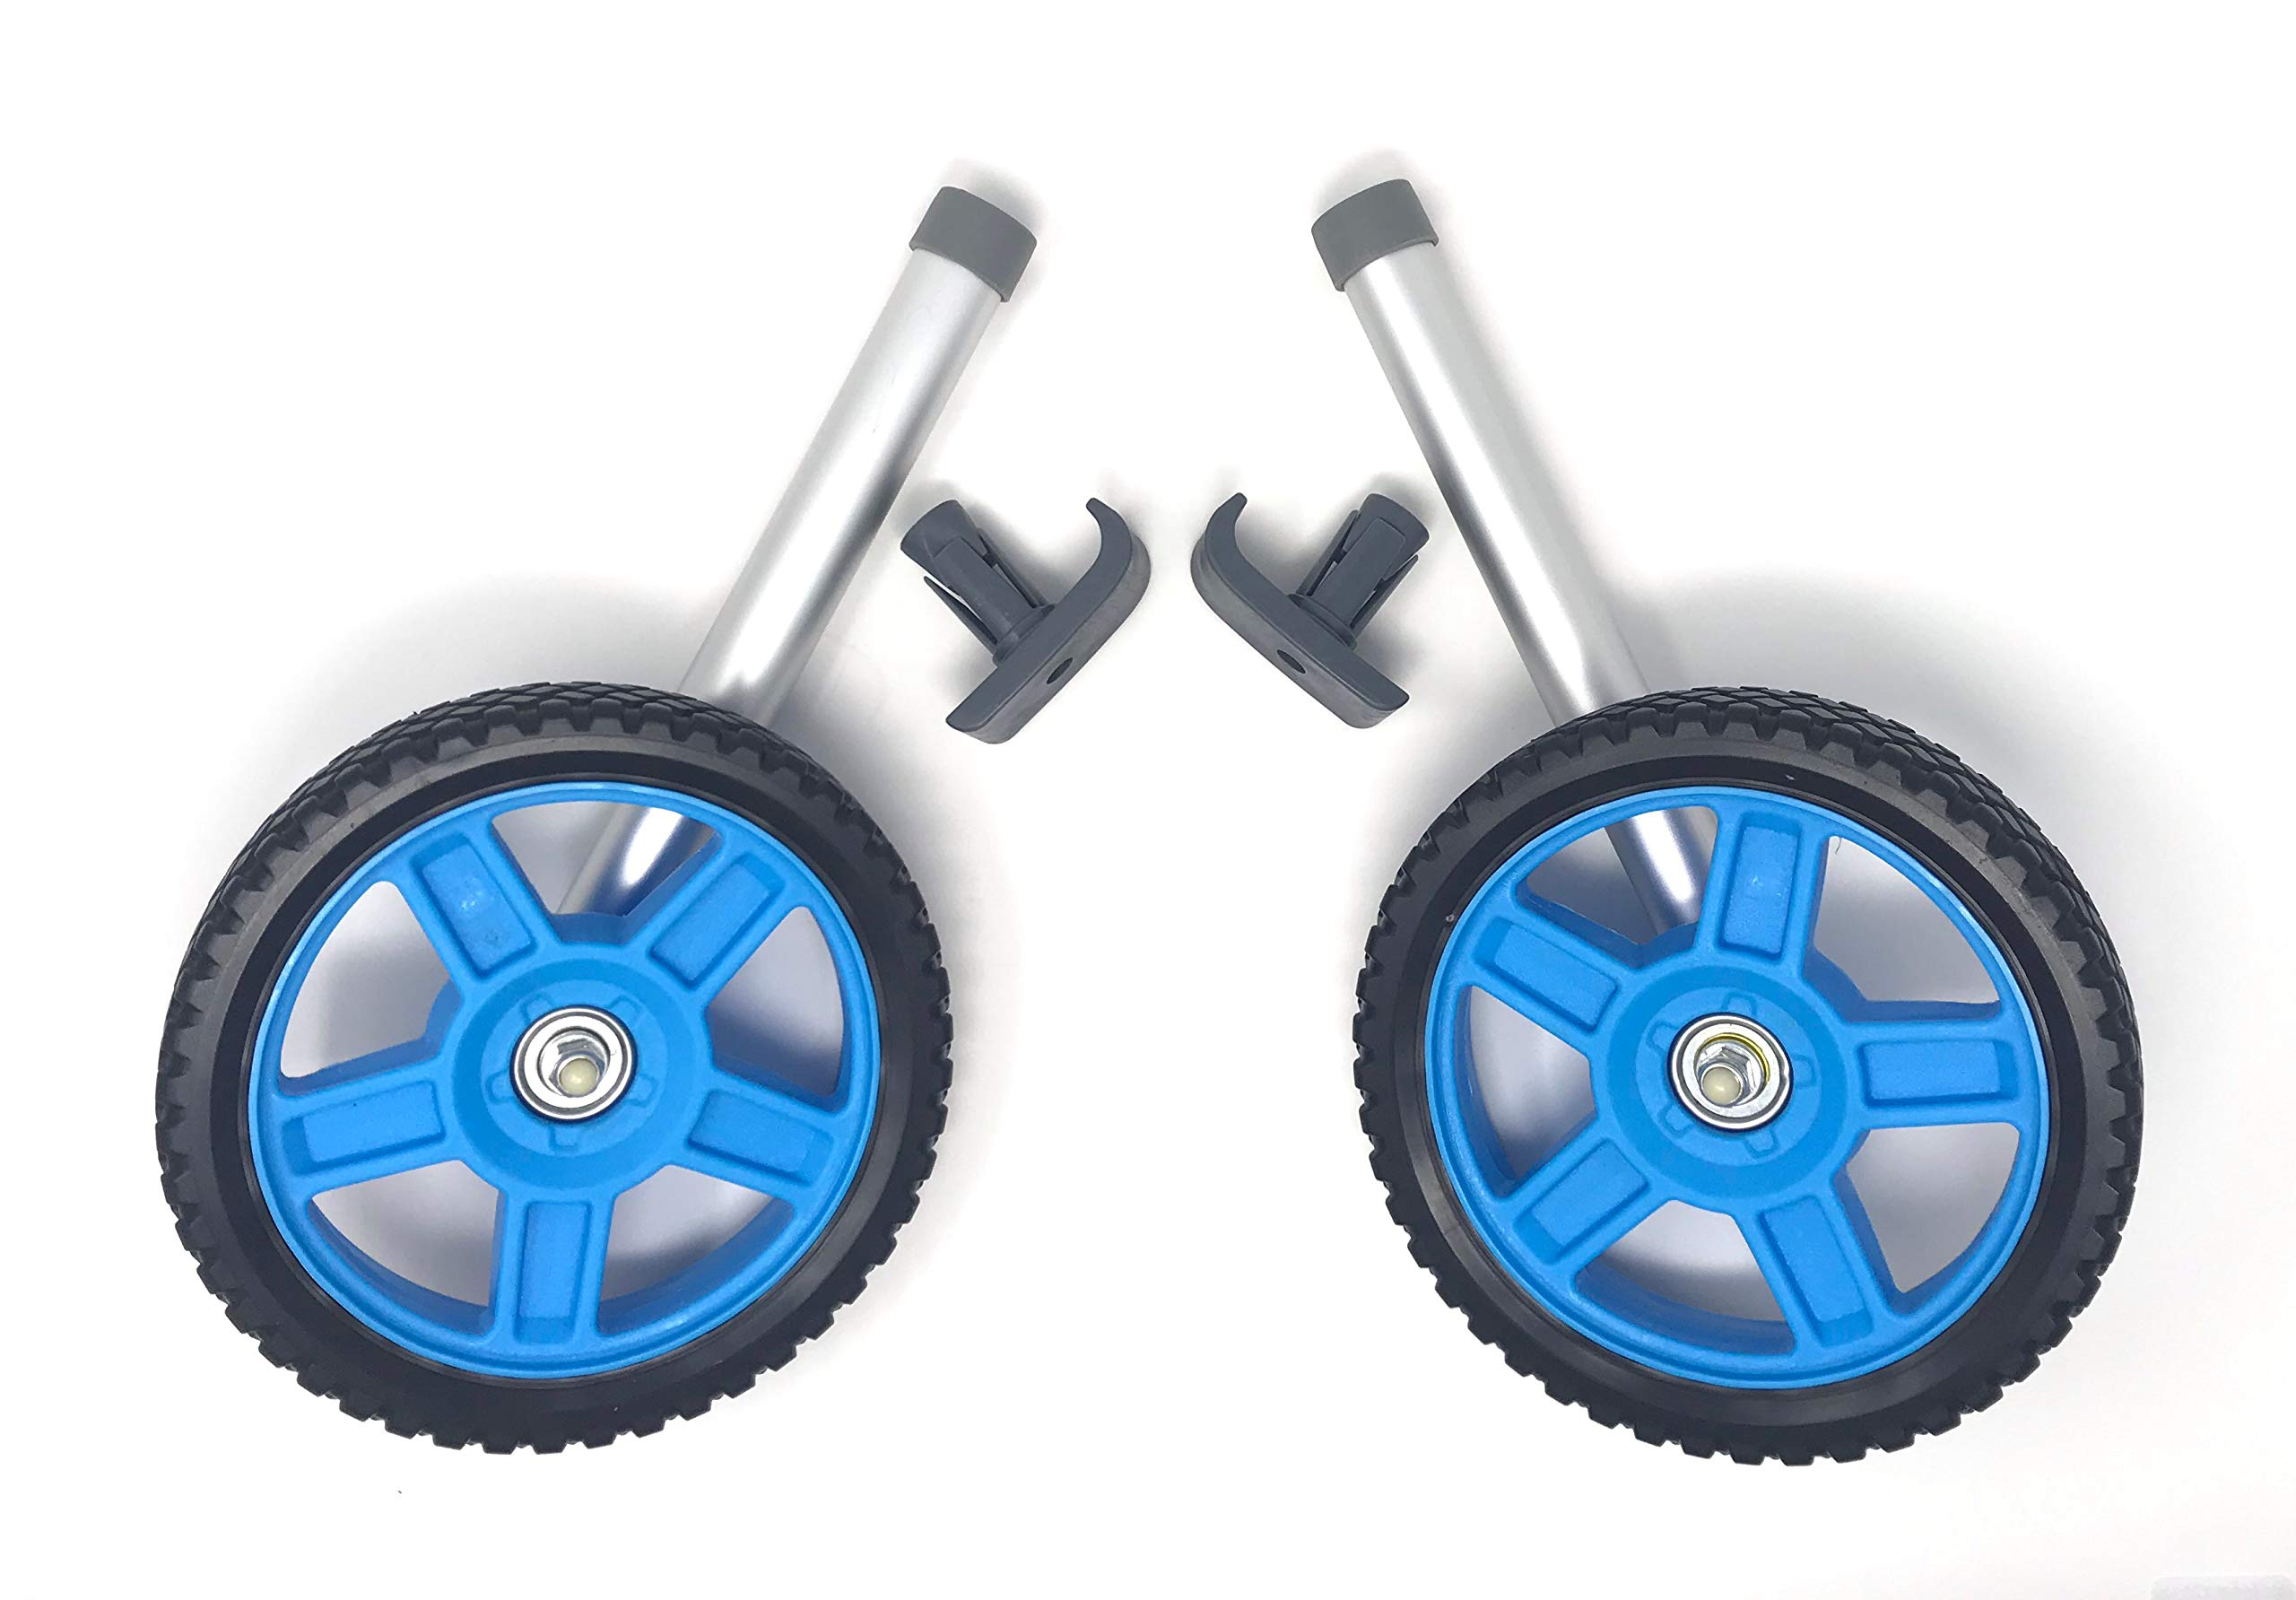 Top Glides 8'' Off-Road Walker Wheel Kits with Free Flexfit Universal Ski Glides (Blue) by Top Glides